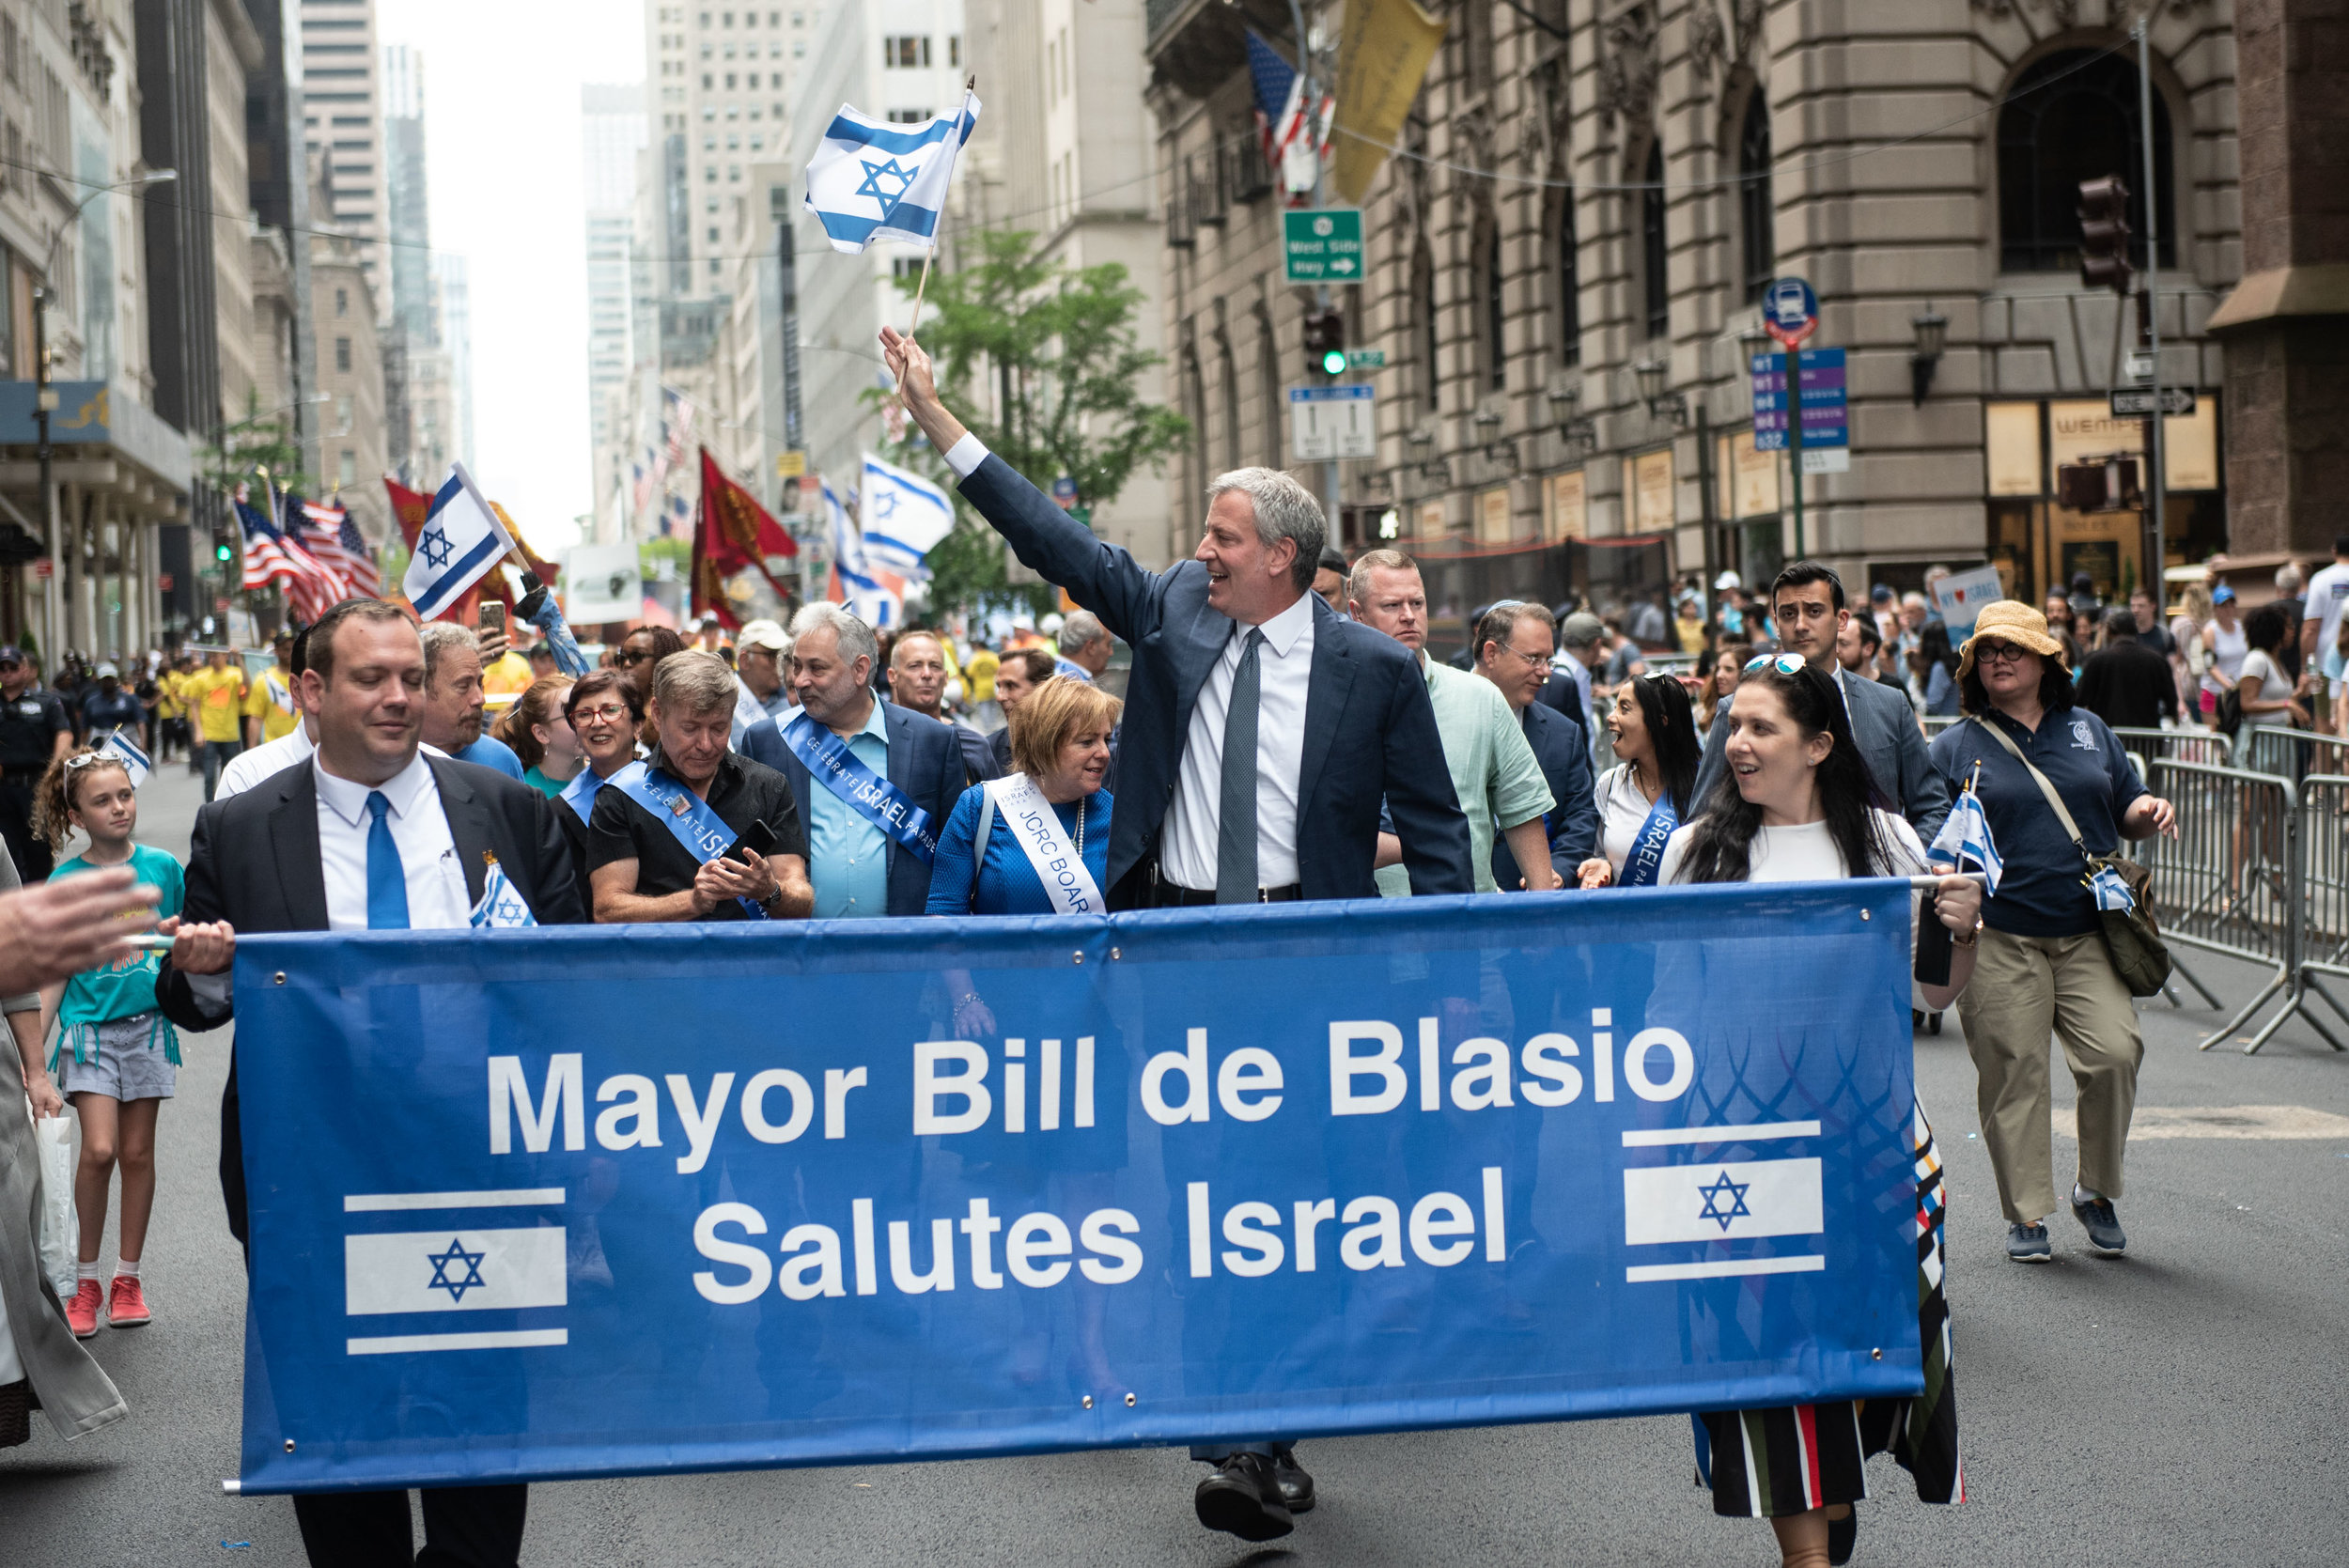 Mayor Bill de Blasio marches in the Celebrate Israel parade Sunday. Photo by Michael Appleton/Mayoral Photography Office.